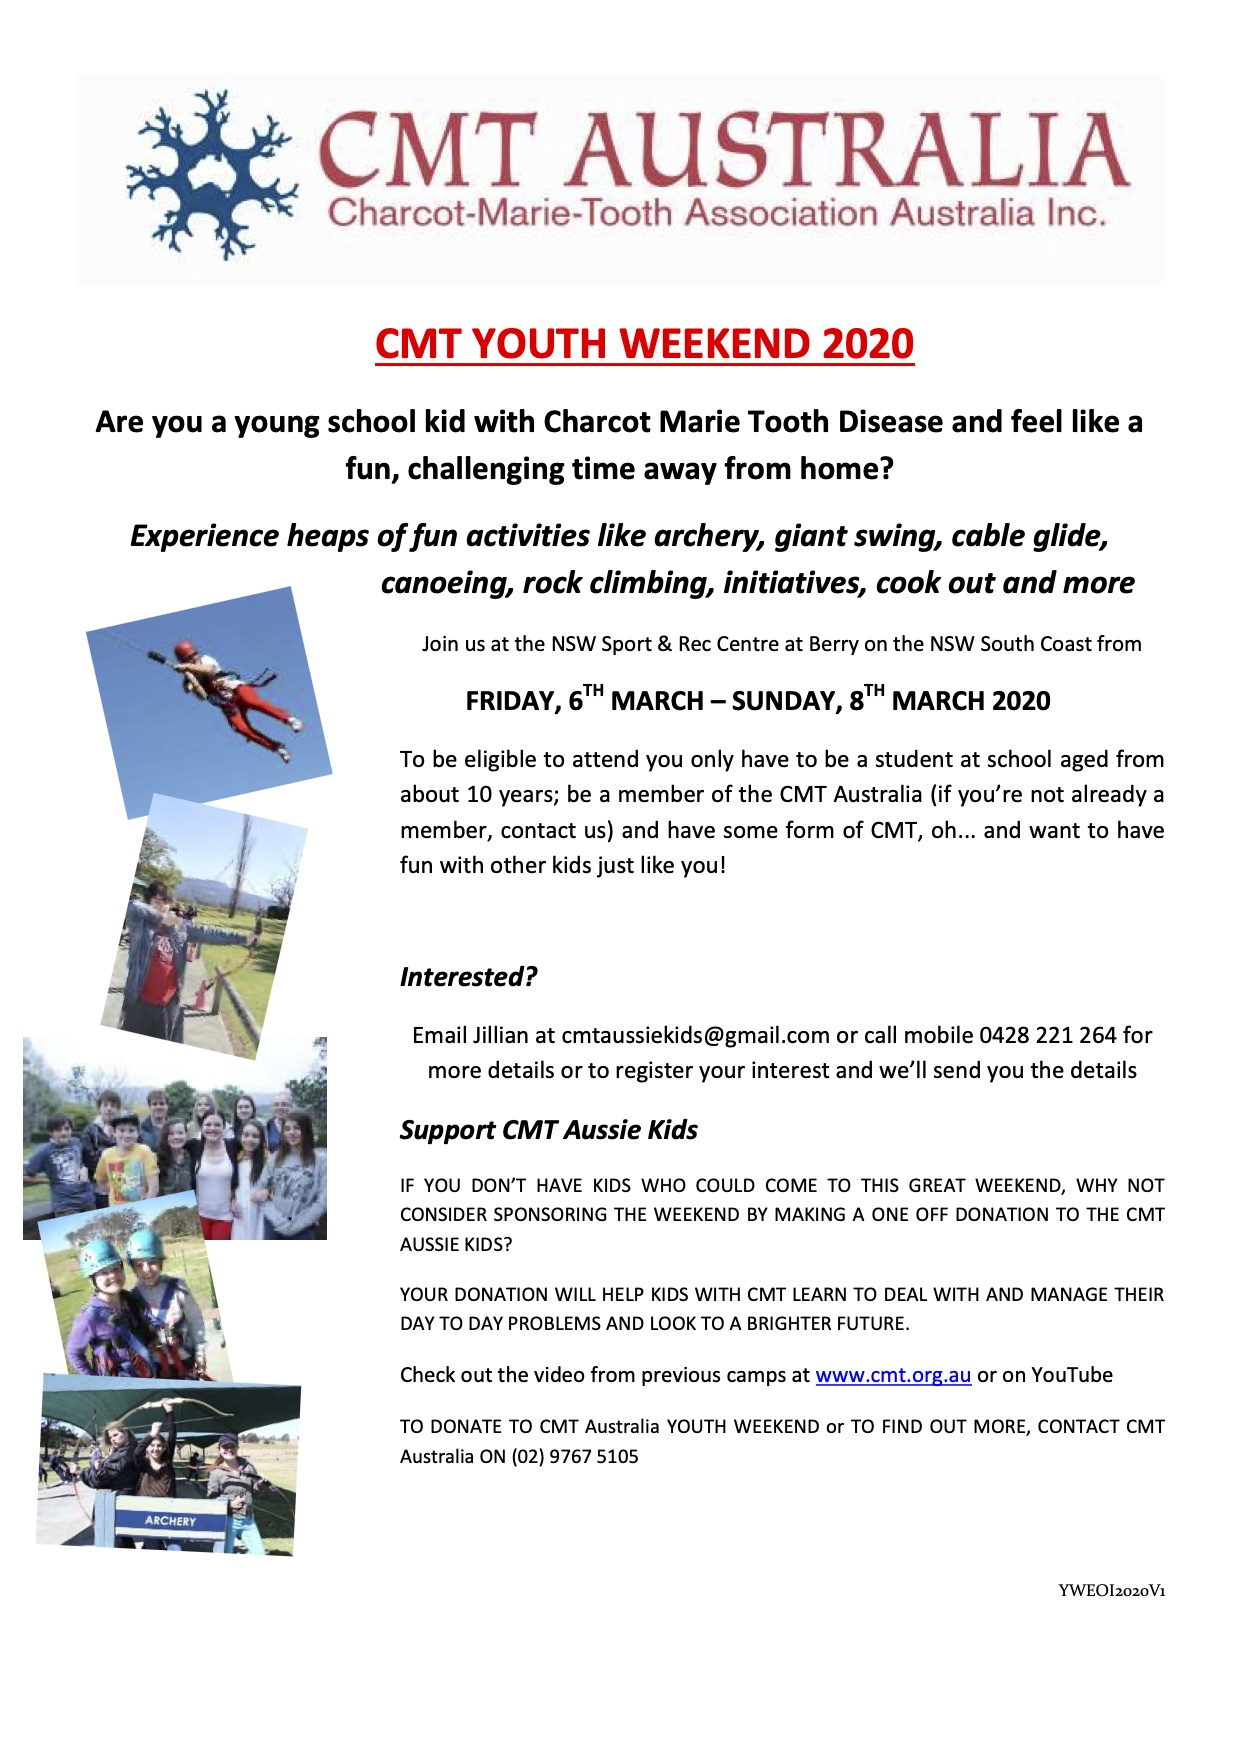 2020 CMT Youth Weekend